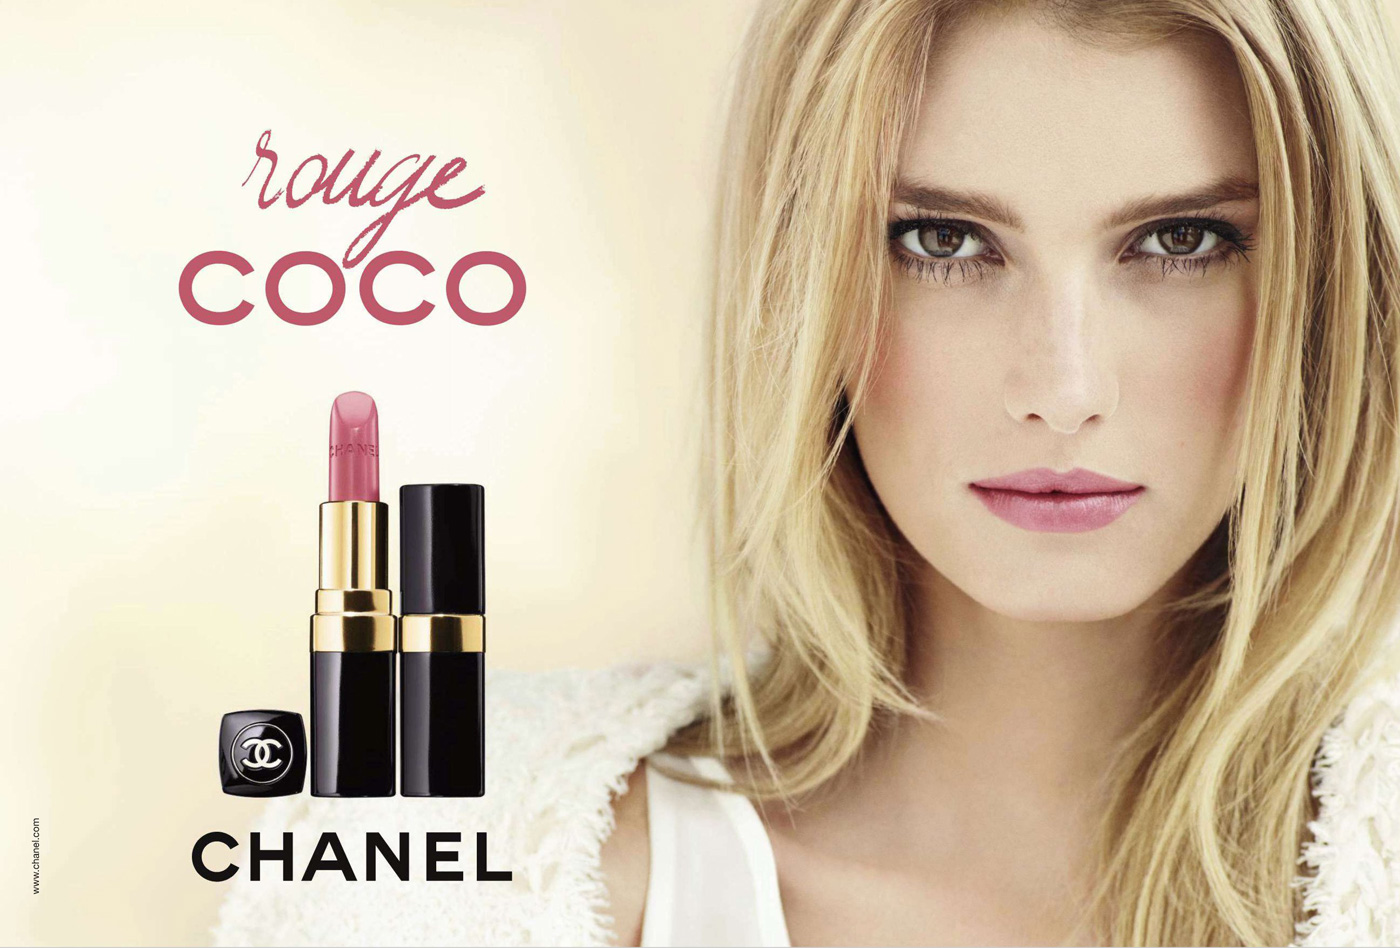 Sigrid-Rouge-Coco-Chanel-01